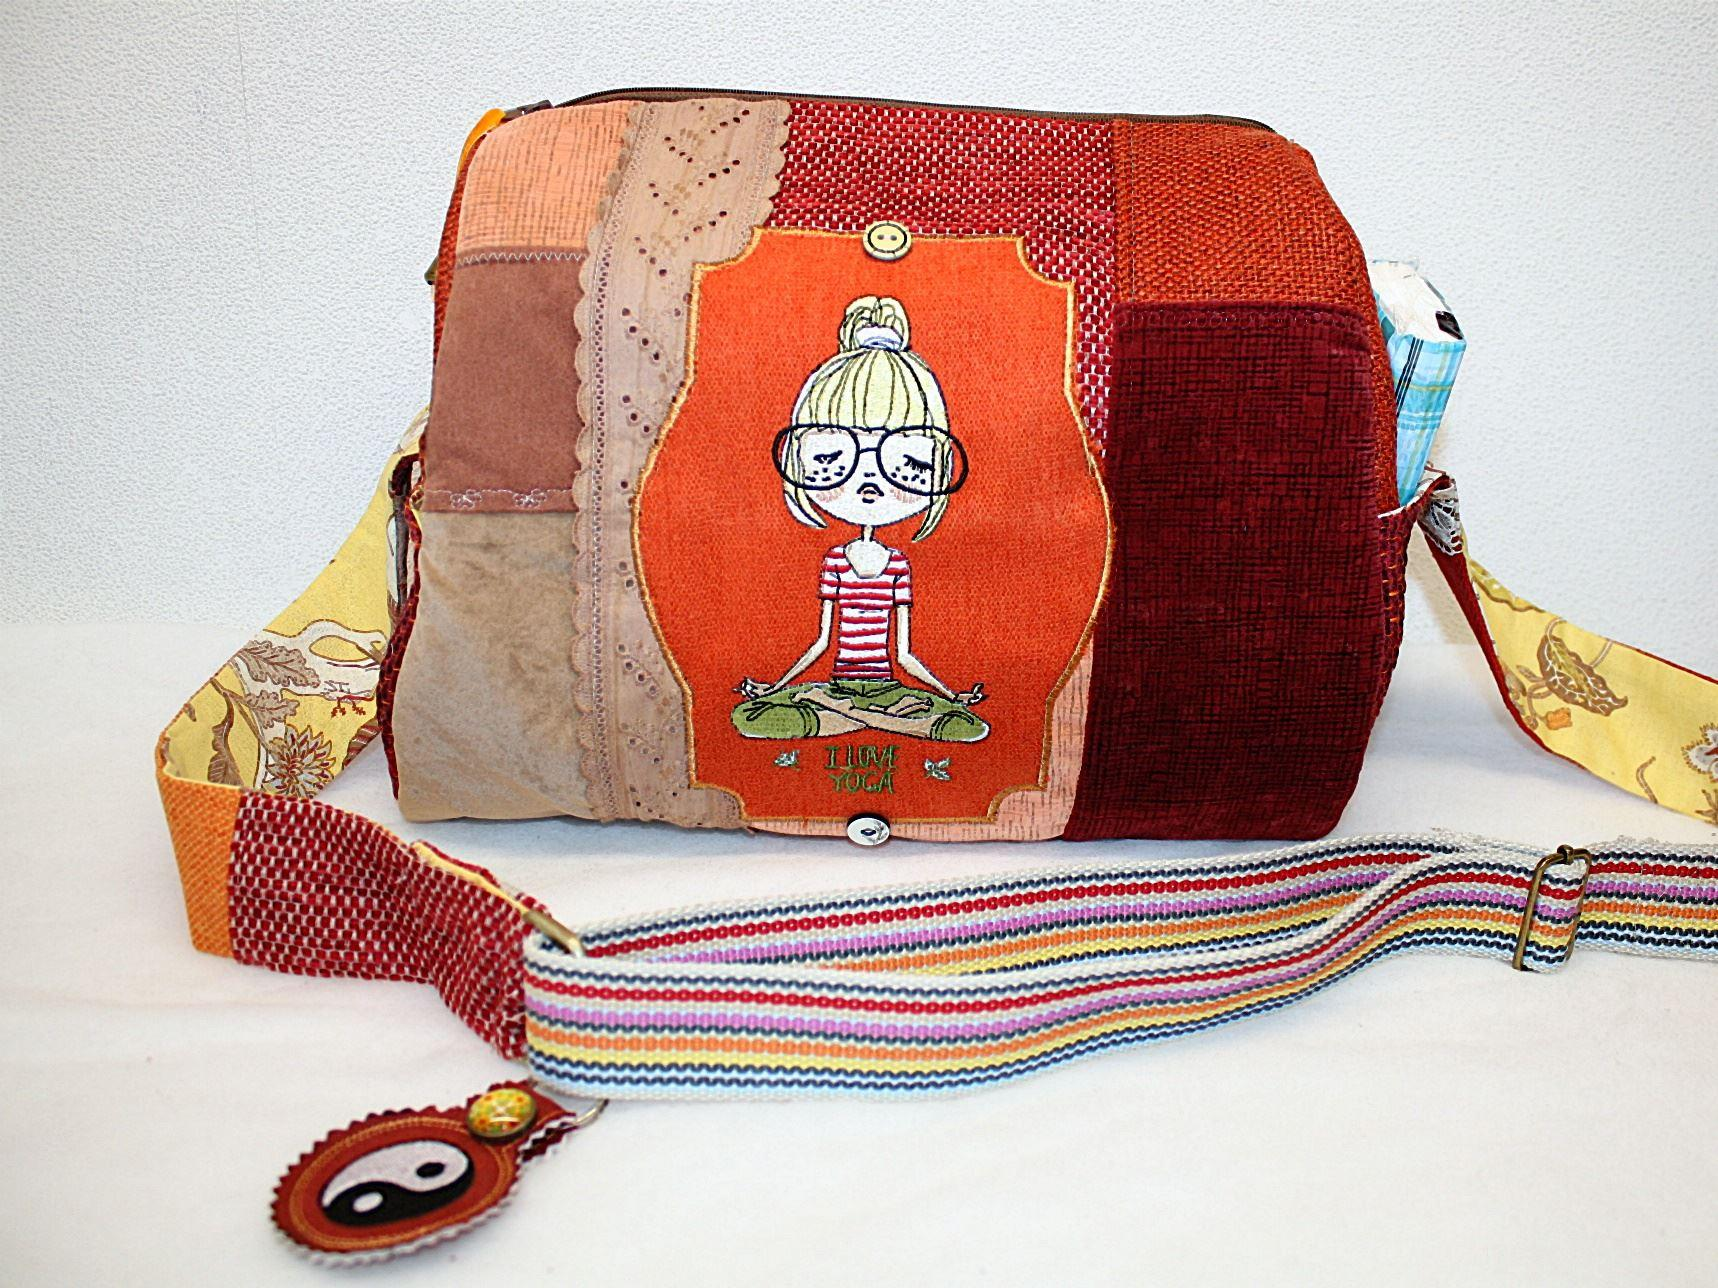 Travel bag with I love yoga embroidery design